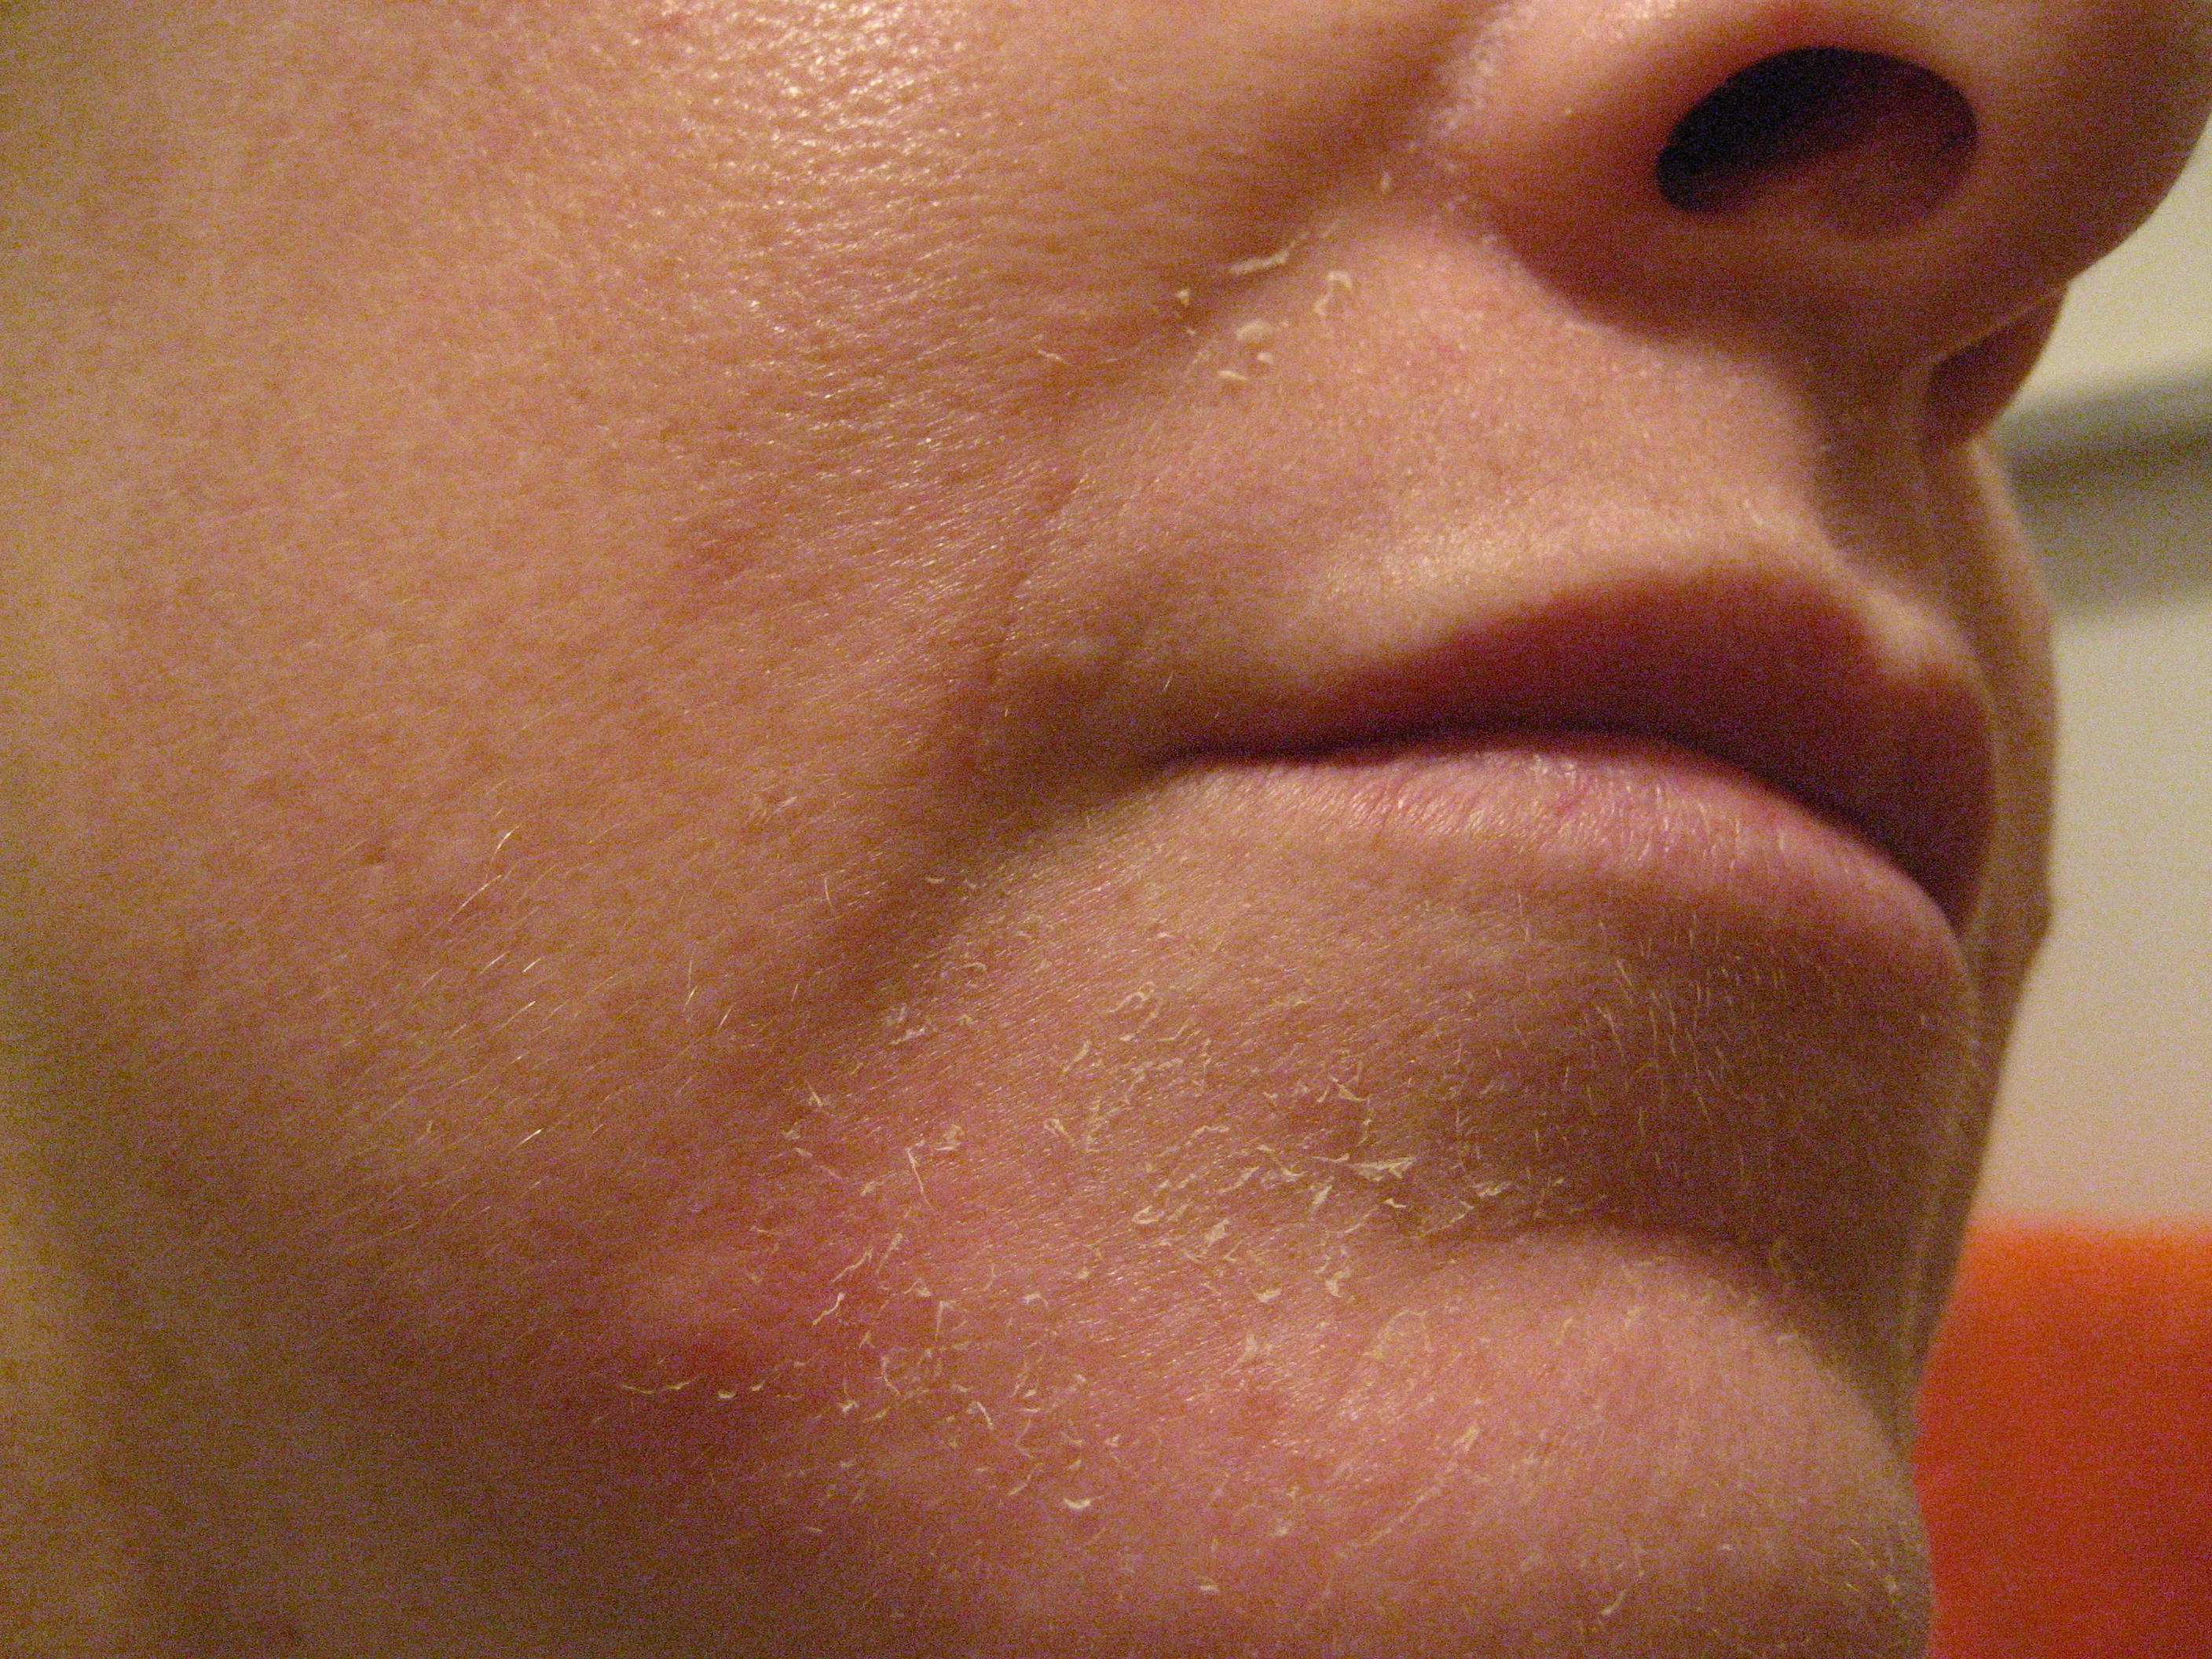 The immediate after effect of tretinoin is a mild flaky peeling.